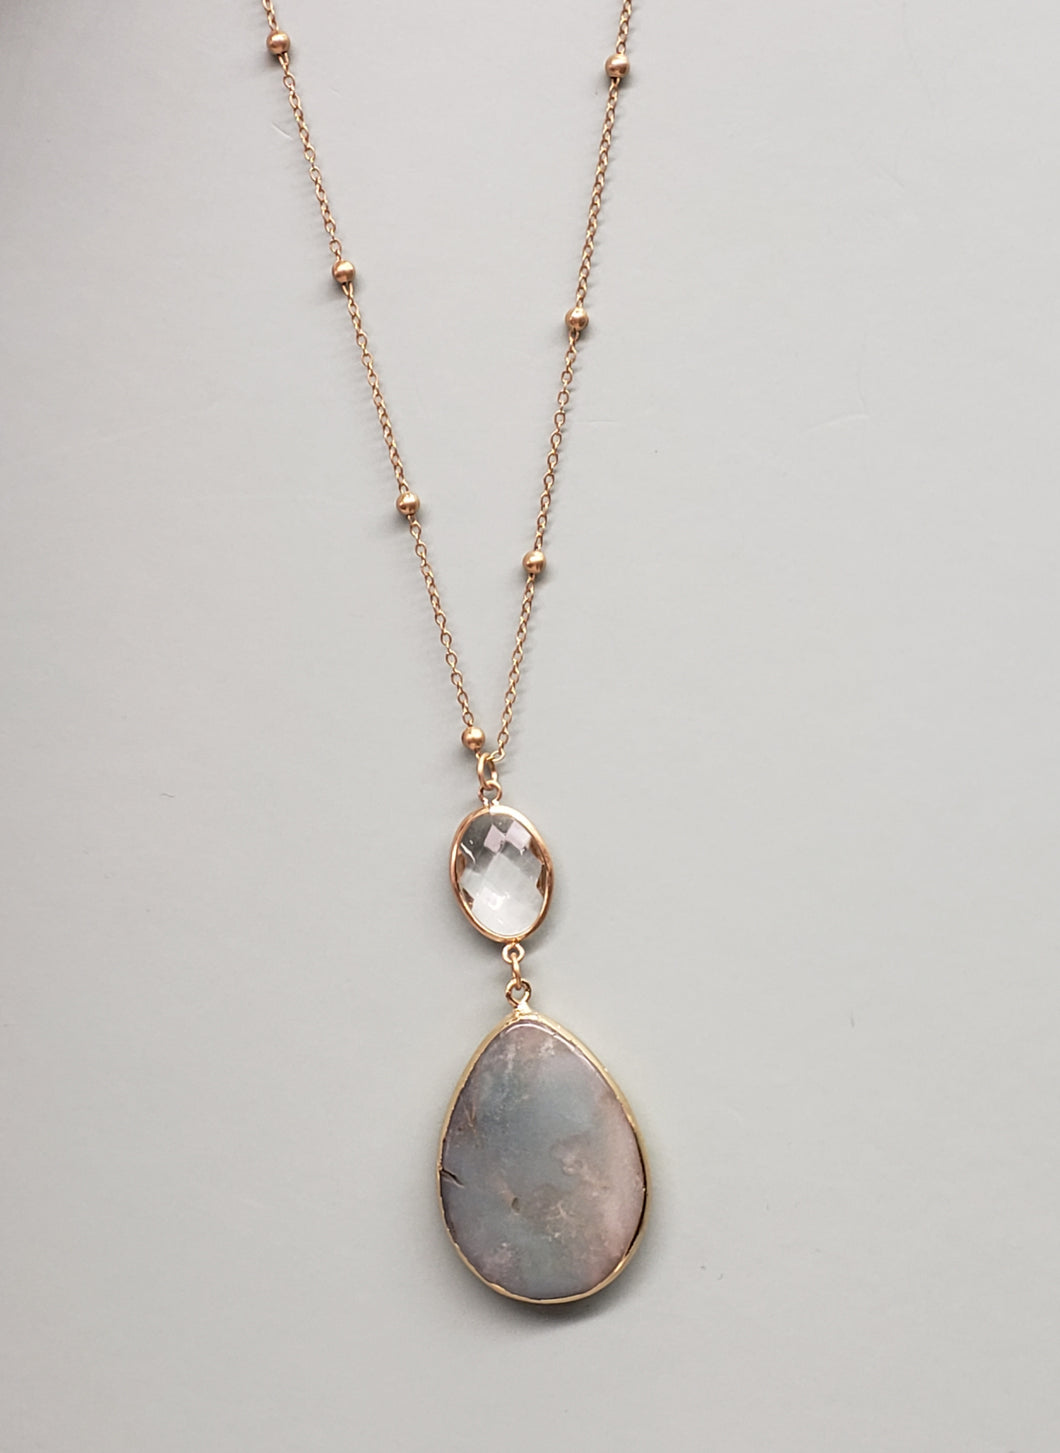 Long Amazonite Pendant necklace in Gold